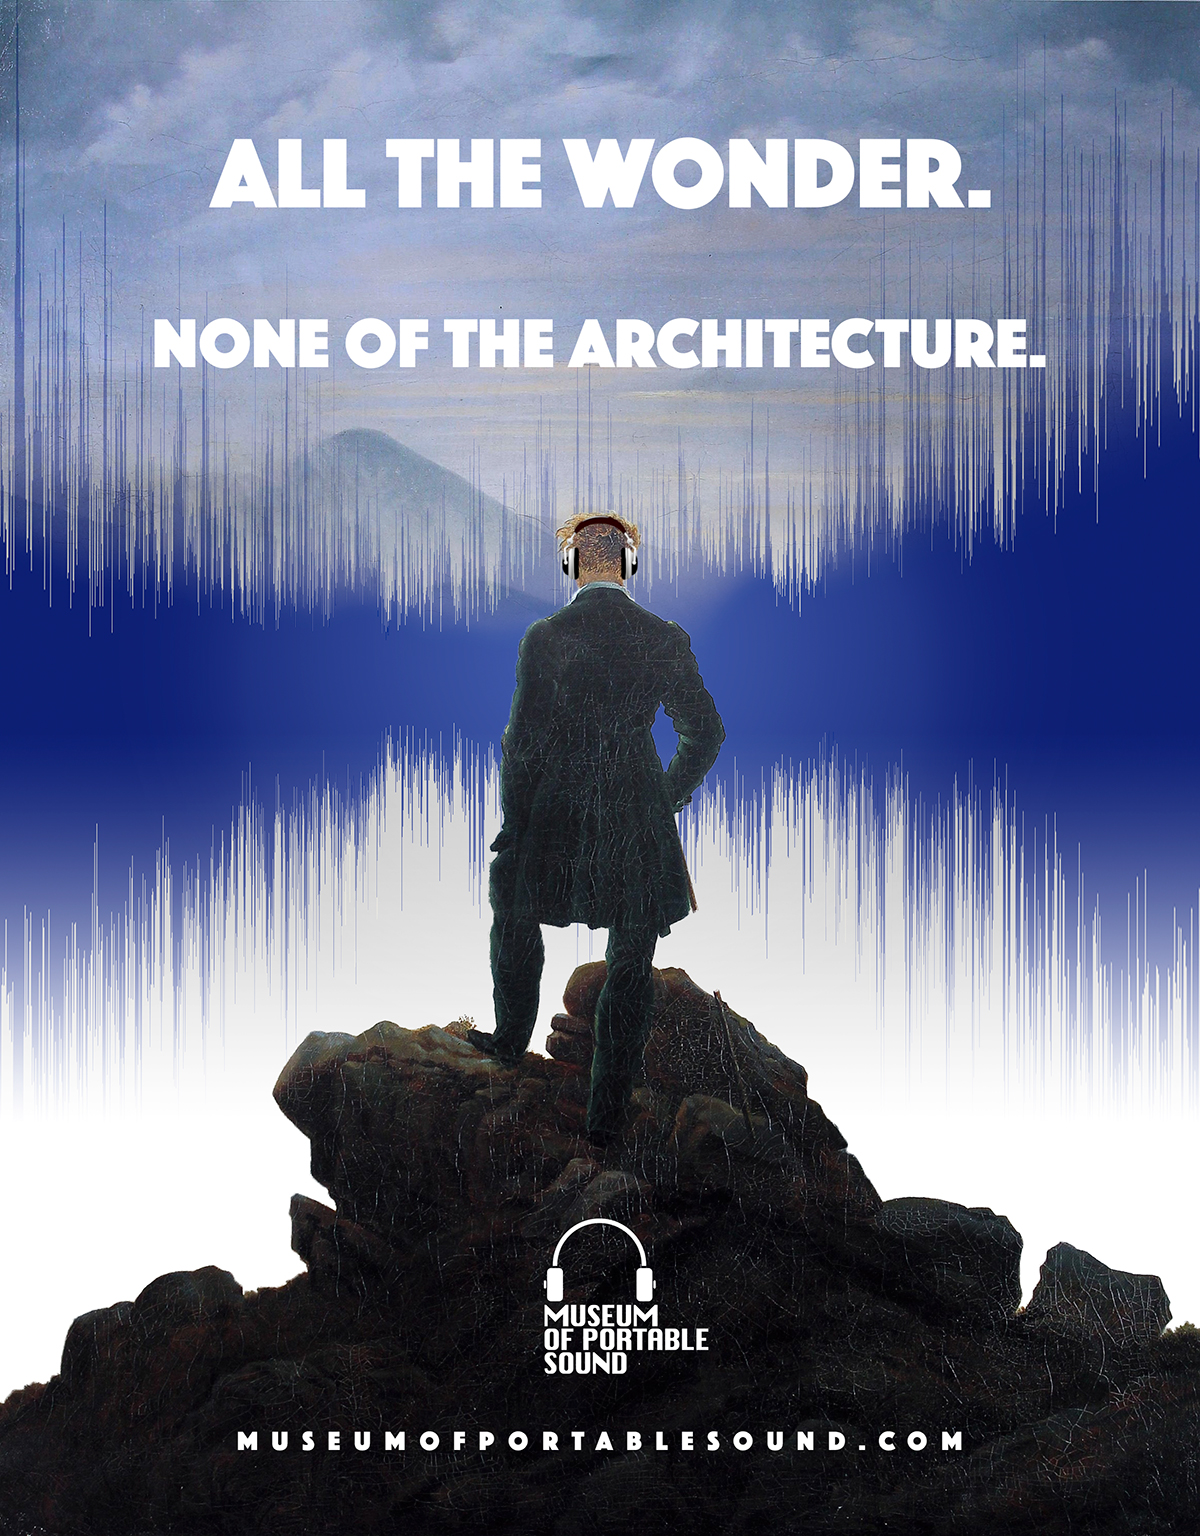 All the wonder. None of the Architecture. (Promotional poster)